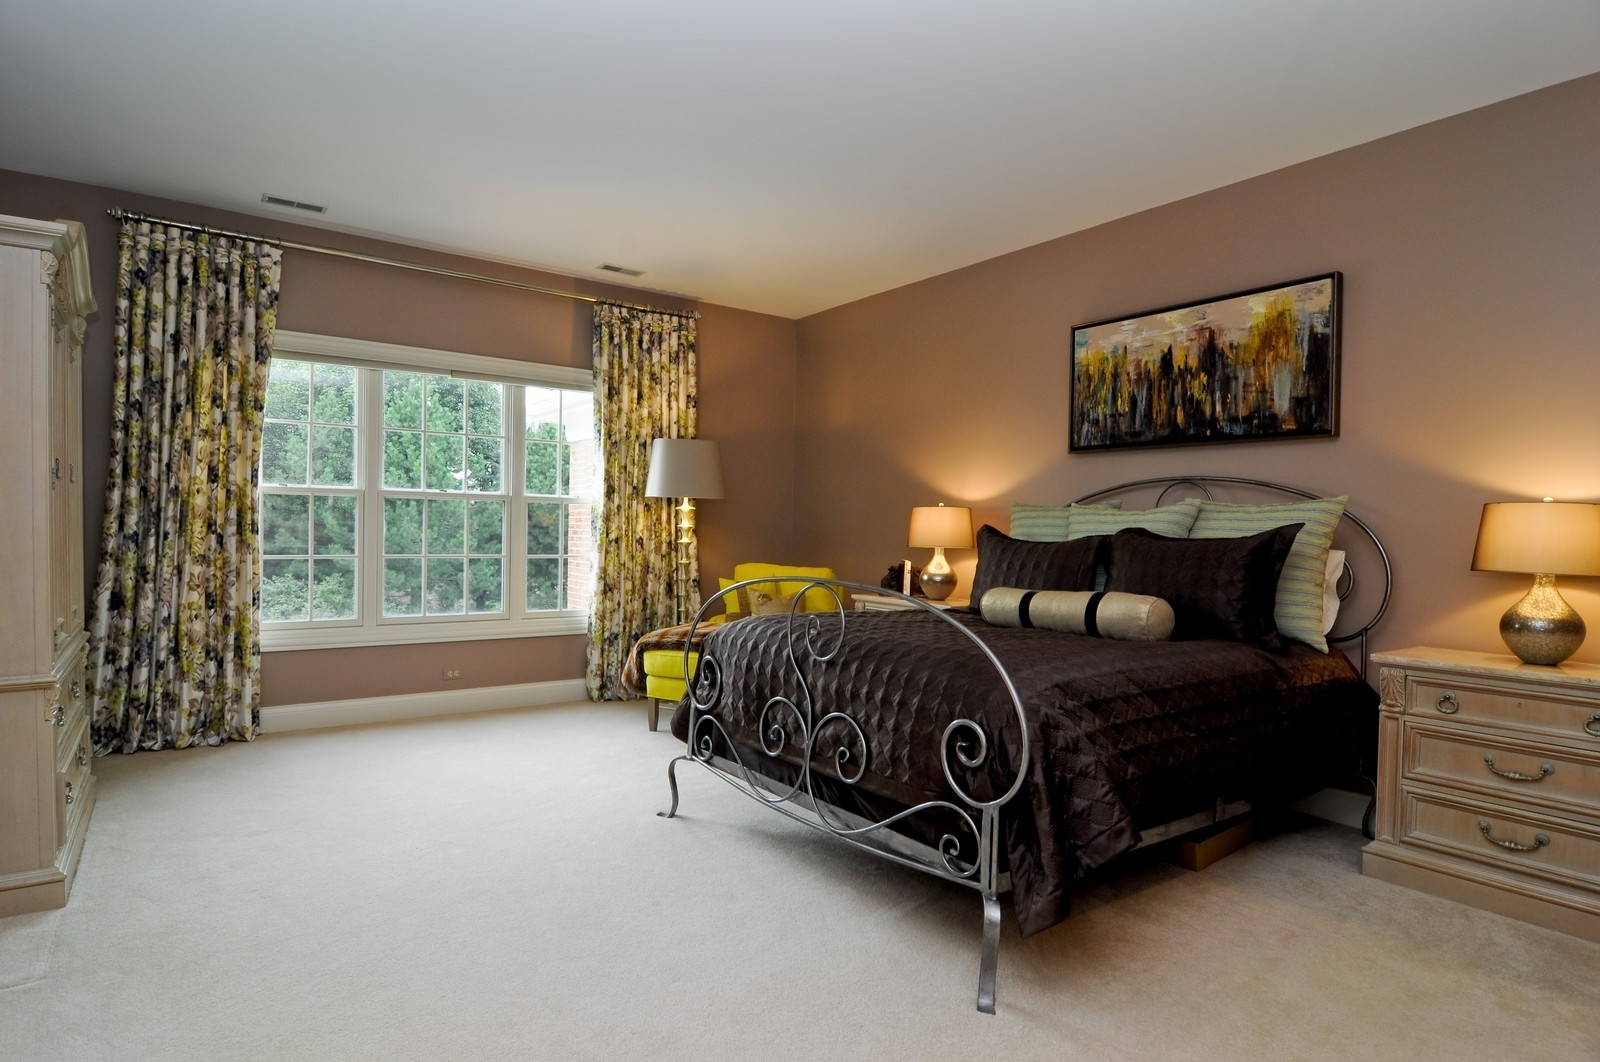 Real Estate Photography - 31 Lake Adalyn Drive, South Barrington, IL, 60010 - 2nd Guest Bedroom Suite